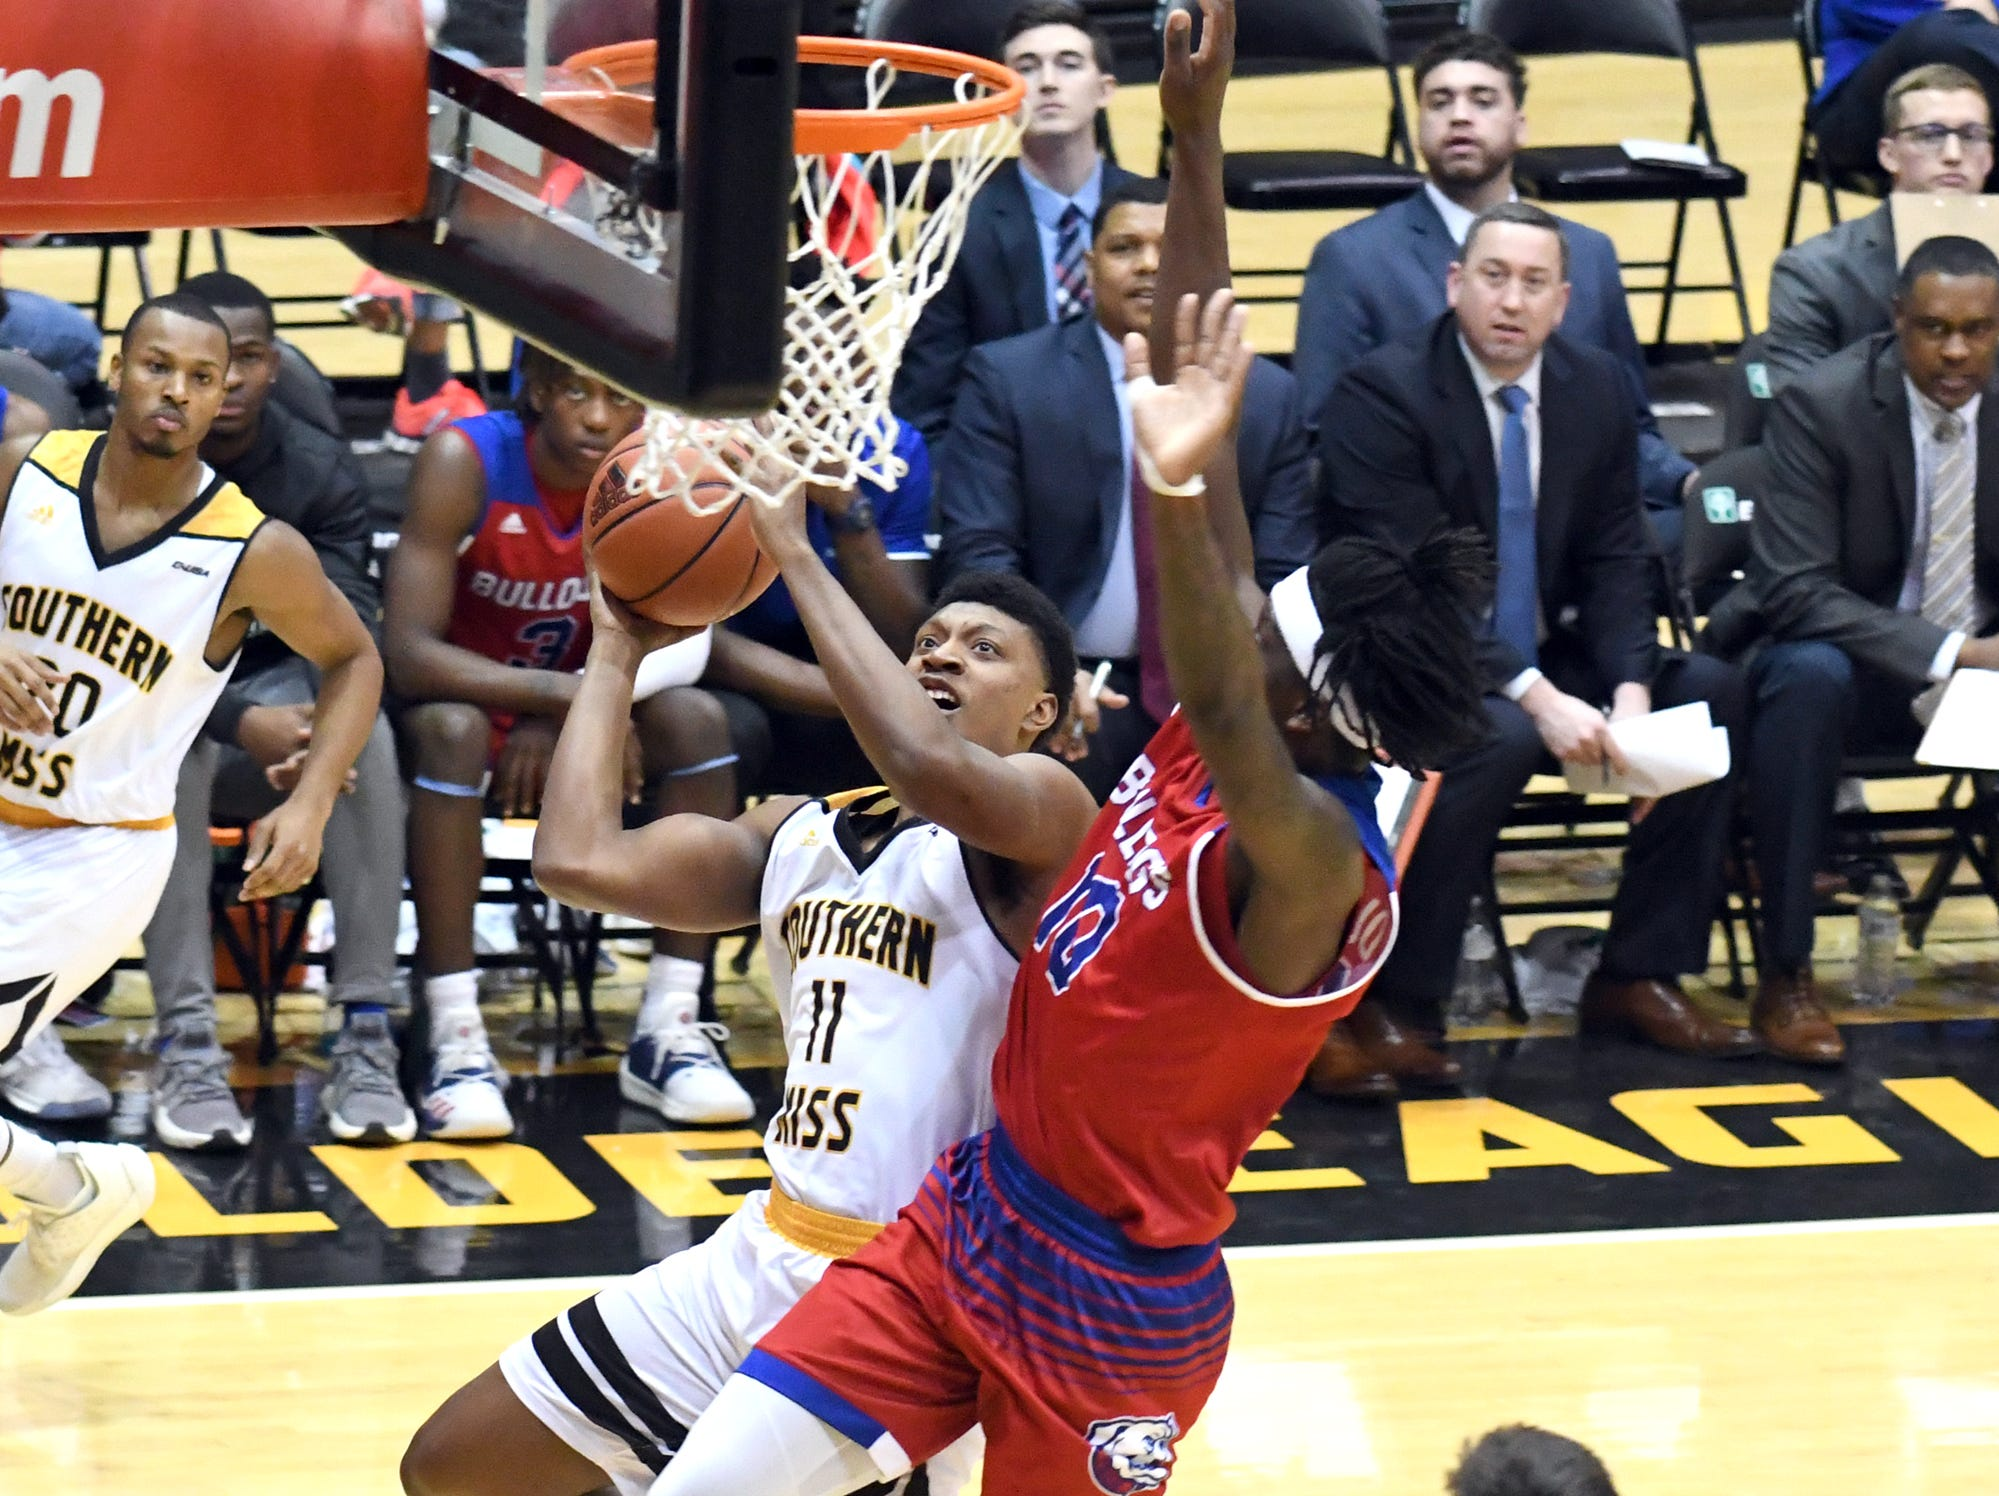 Southern Miss guard Ladavius Draine goes for the basket in a game against Louisiana Tech in Reed Green Coliseum on Saturday, February 9, 2019.